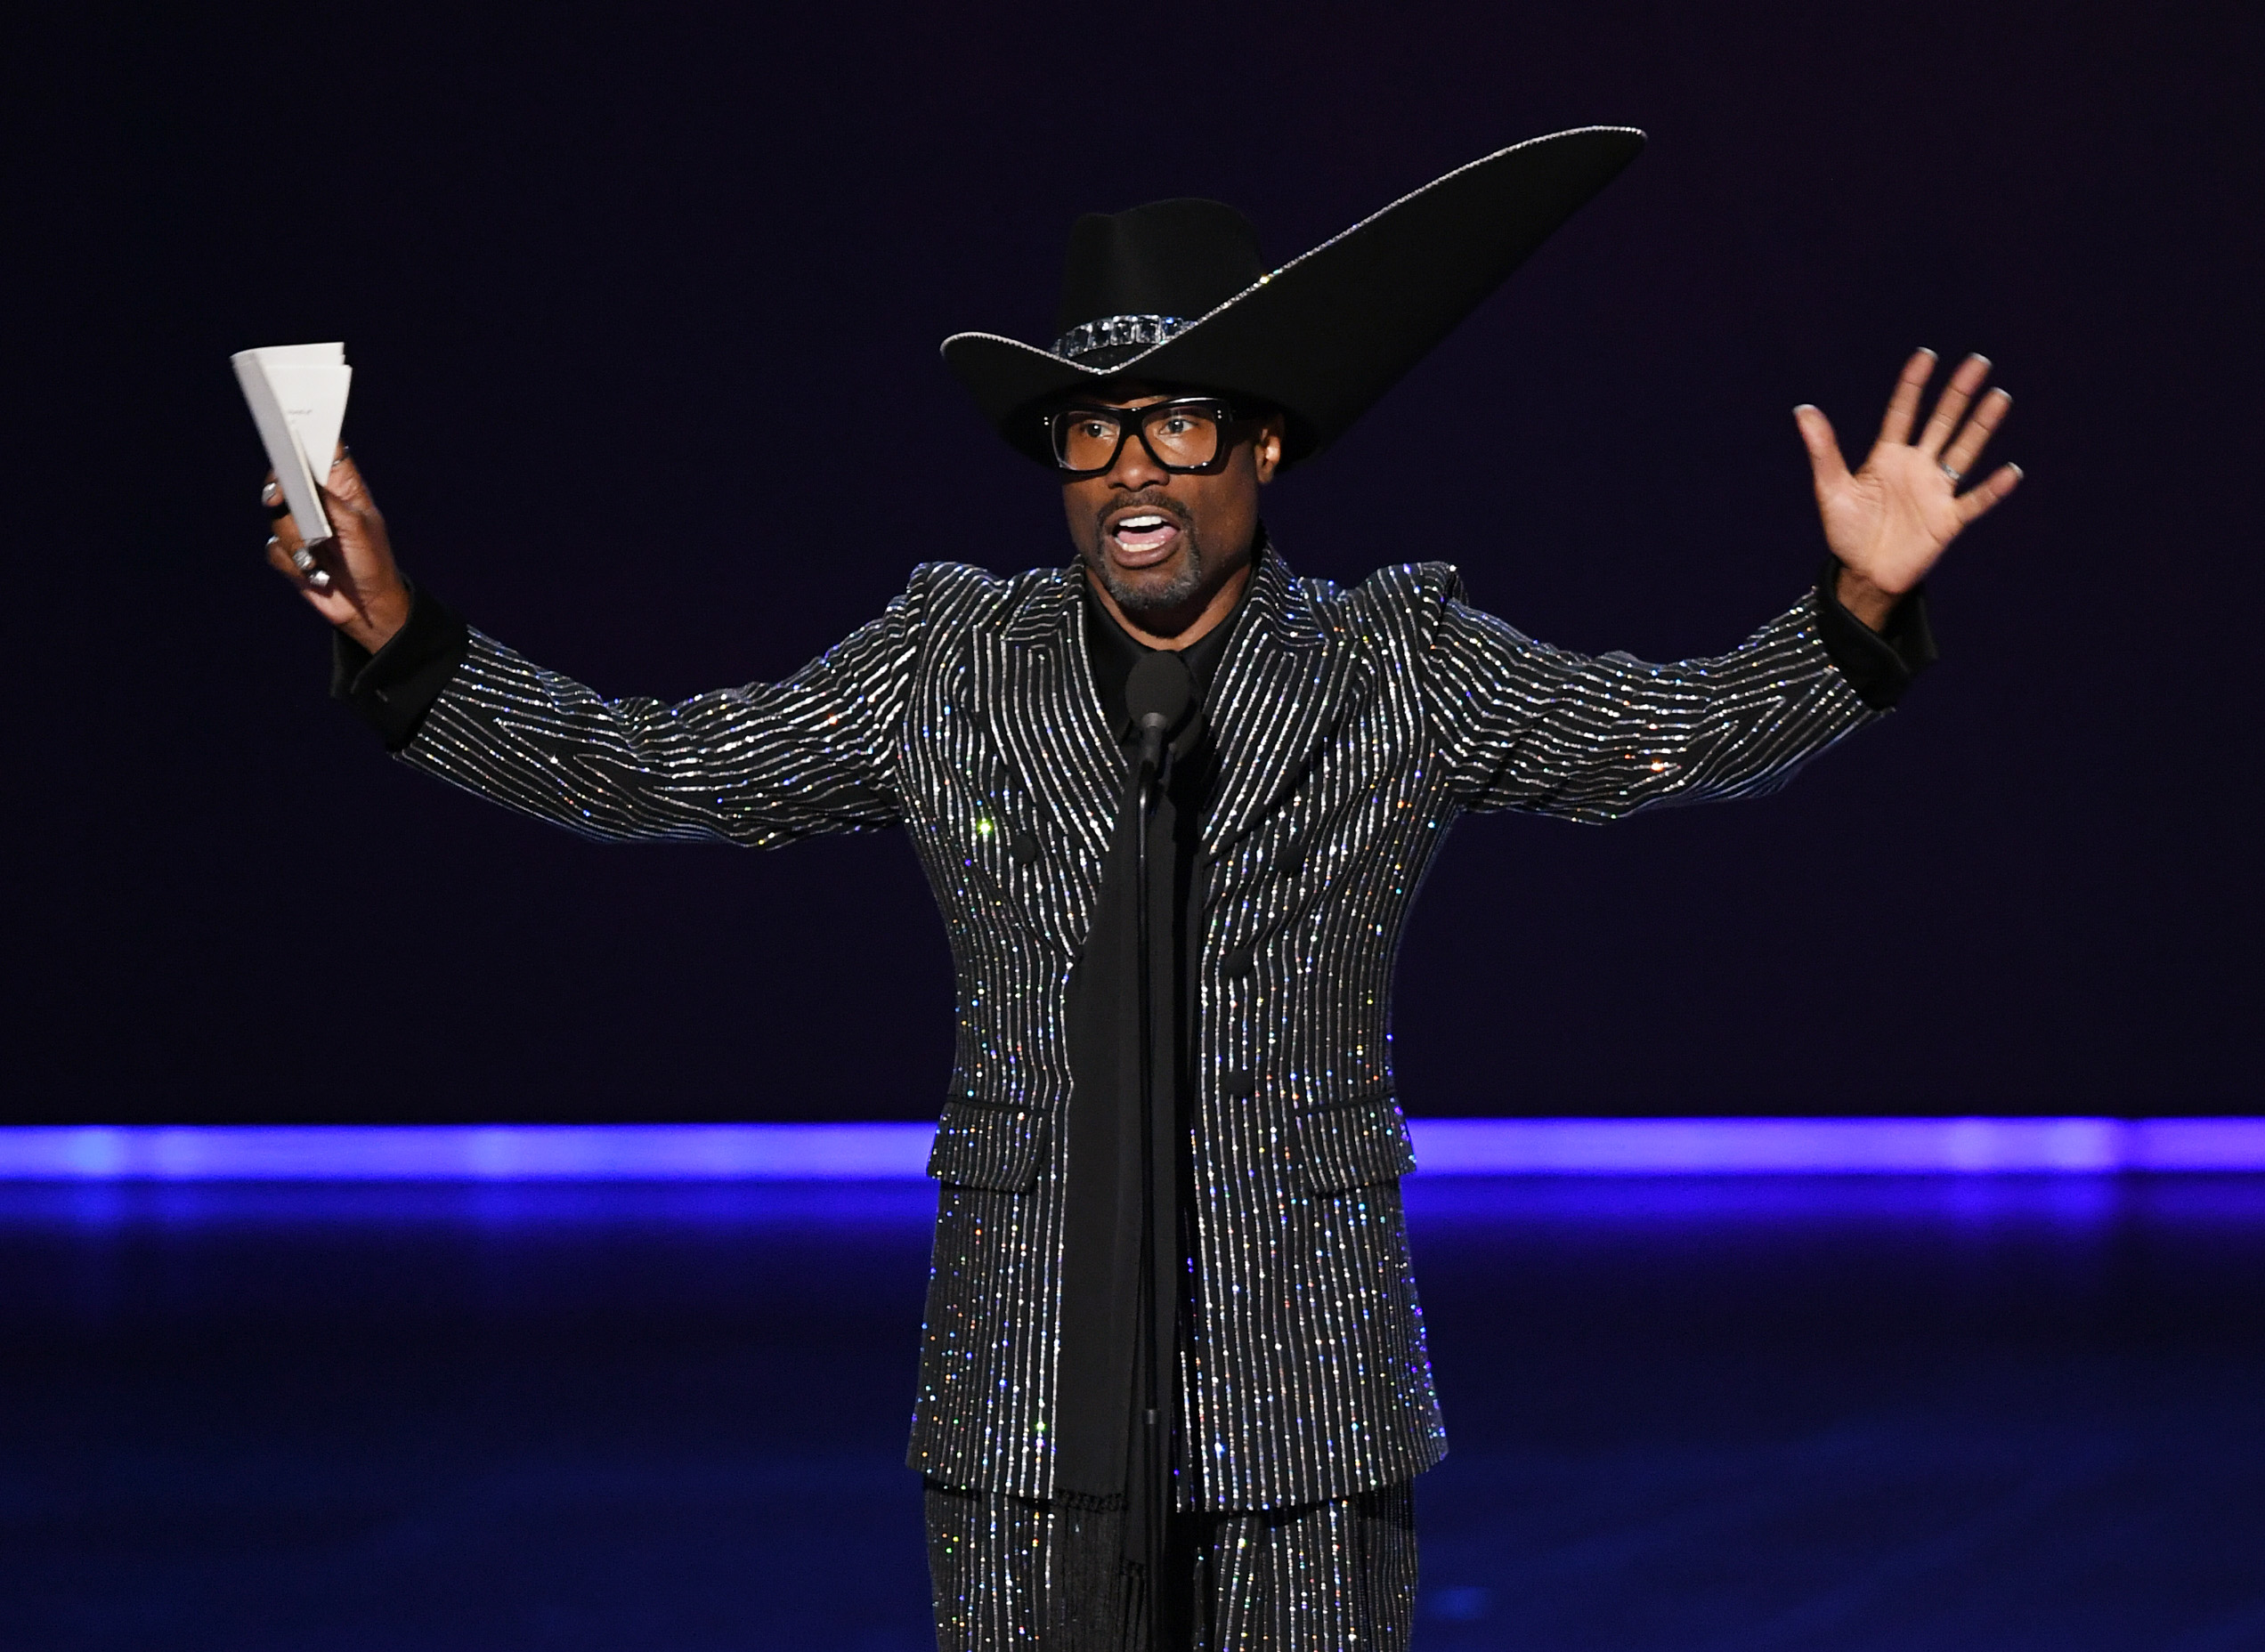 Billy Porter accepts the Emmy for Lead Actor in a Drama for 'Pose' at the 2019 Emmys.